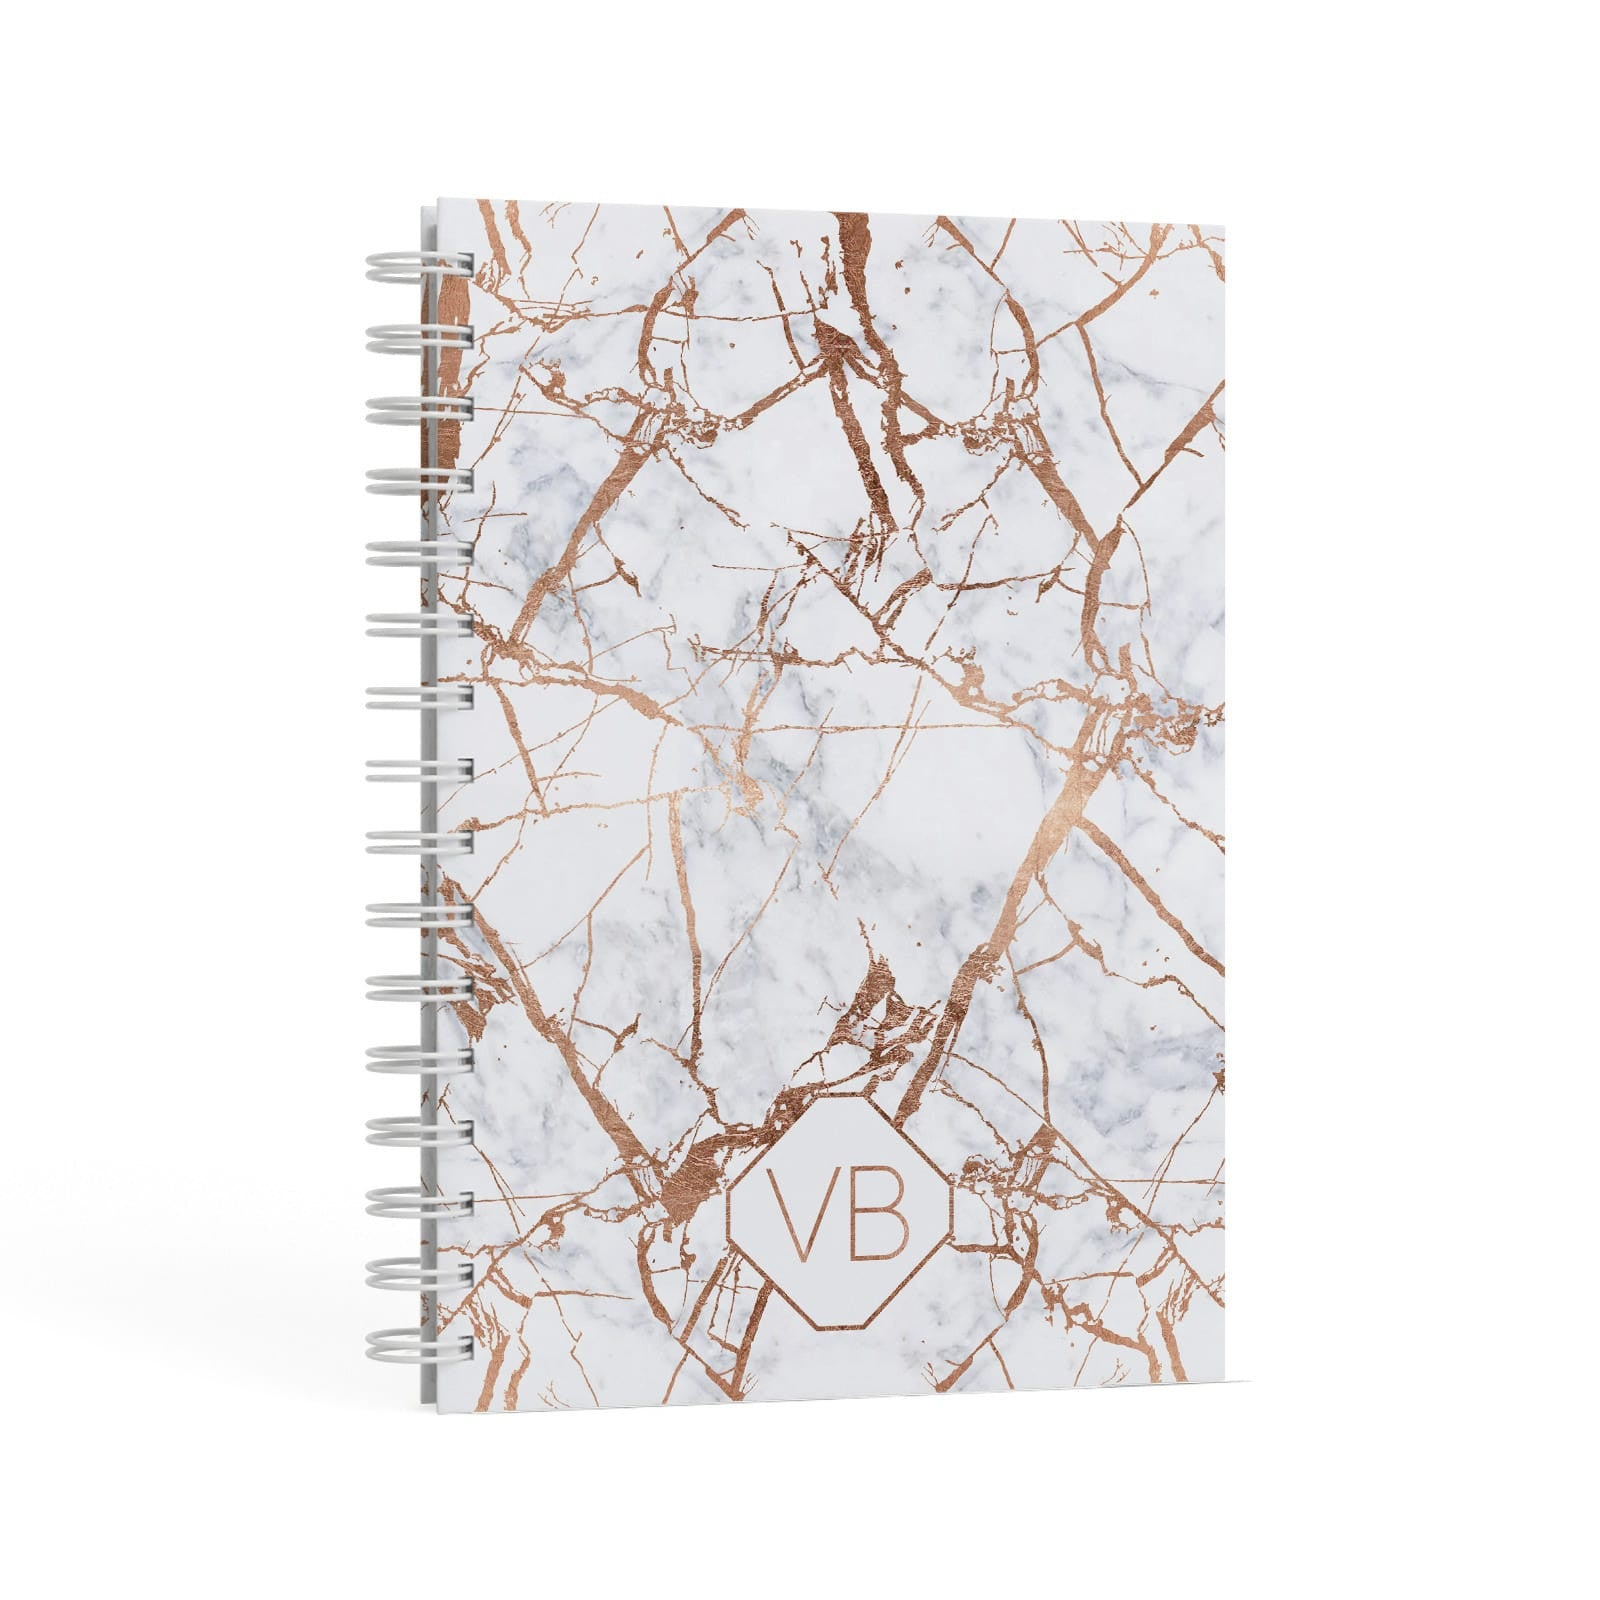 Personalised Rose Gold Vein Marble Initials A5 Hardcover Notebook Second Side View